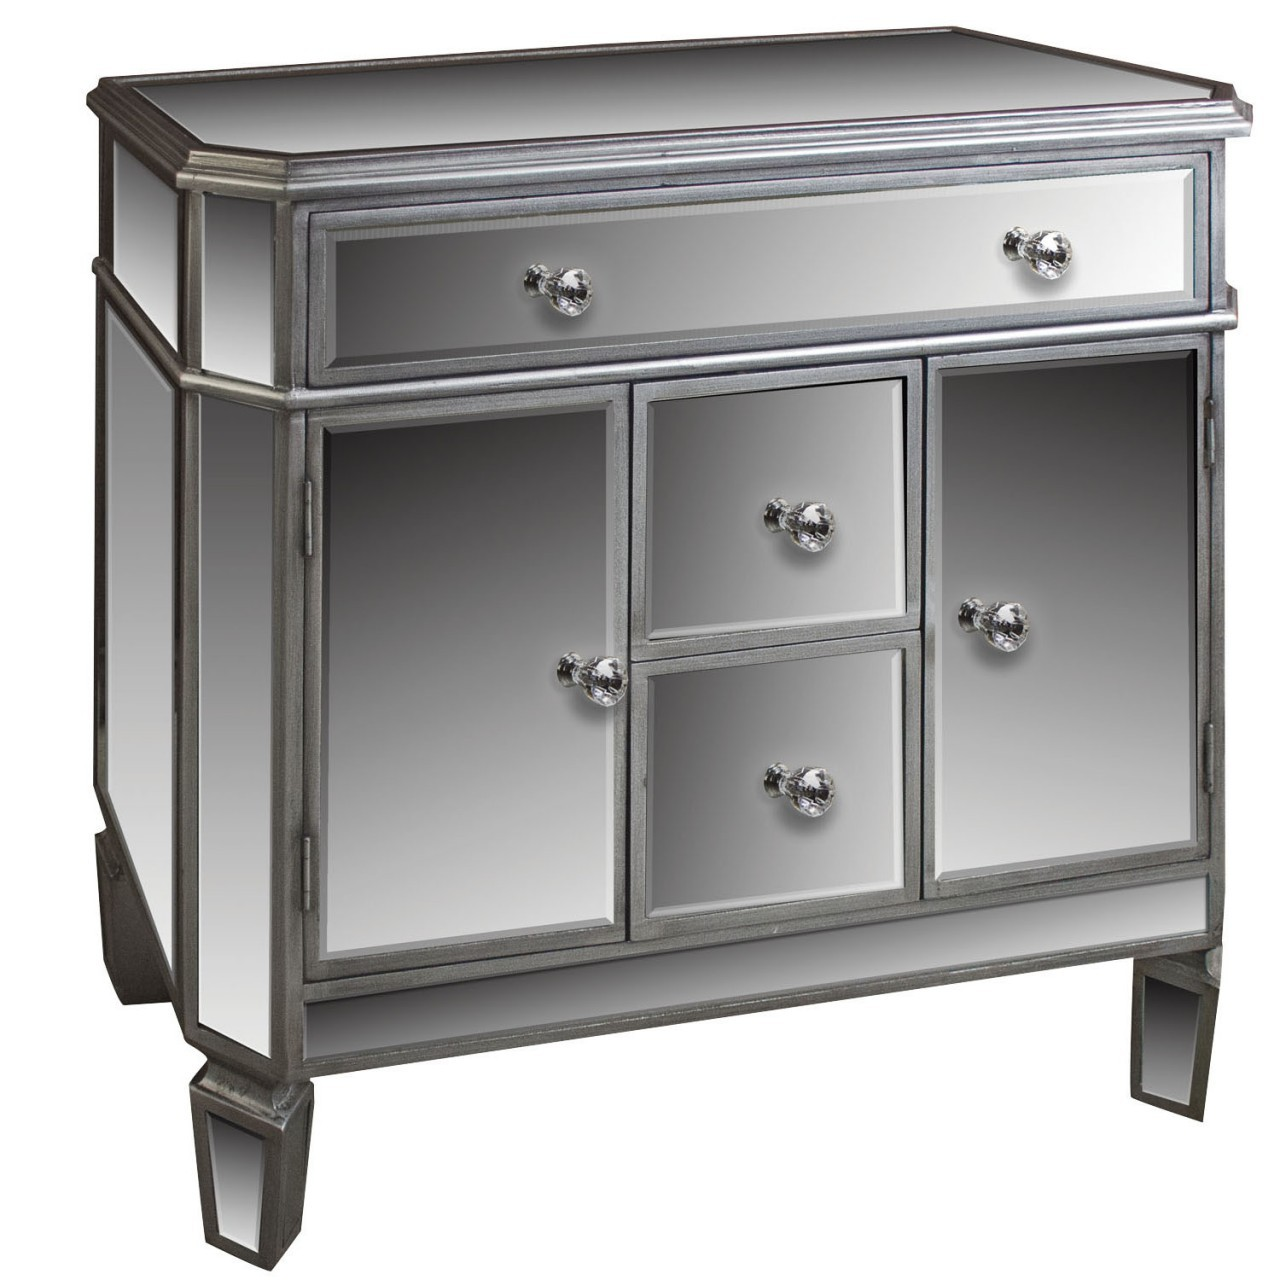 Chic mirrored sideboard with knobs silver color and with decorative pattern design mirrored sideboard ideas